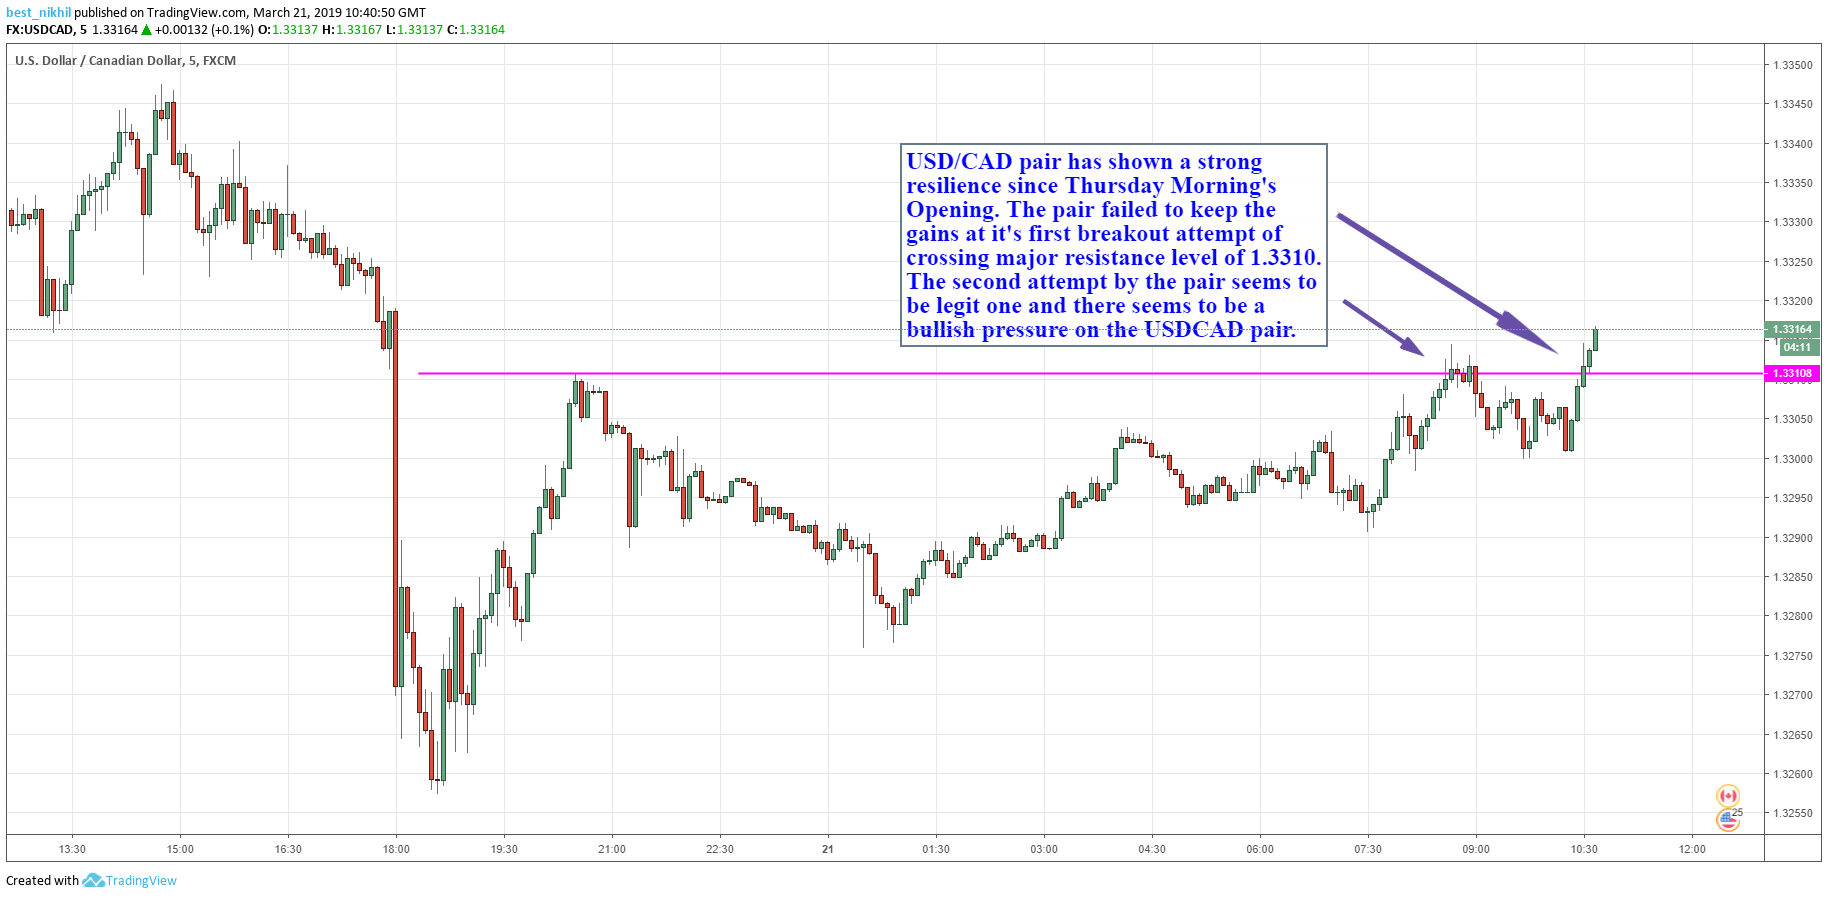 USDCAD 5 Min 21 March 2019